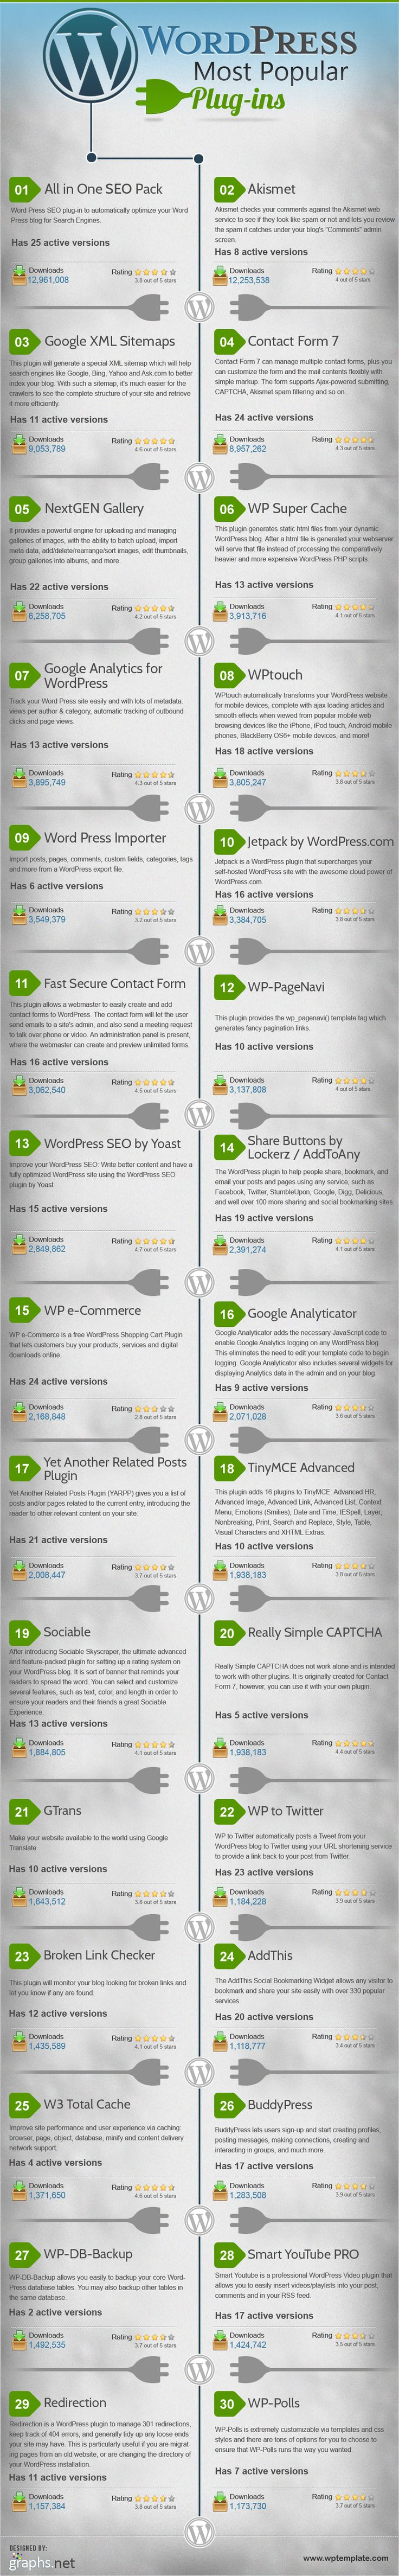 30 Most Popular Wordpress Plugins [Infographic] http://www.instacommerce.net/ http://amfahtech.co.uk